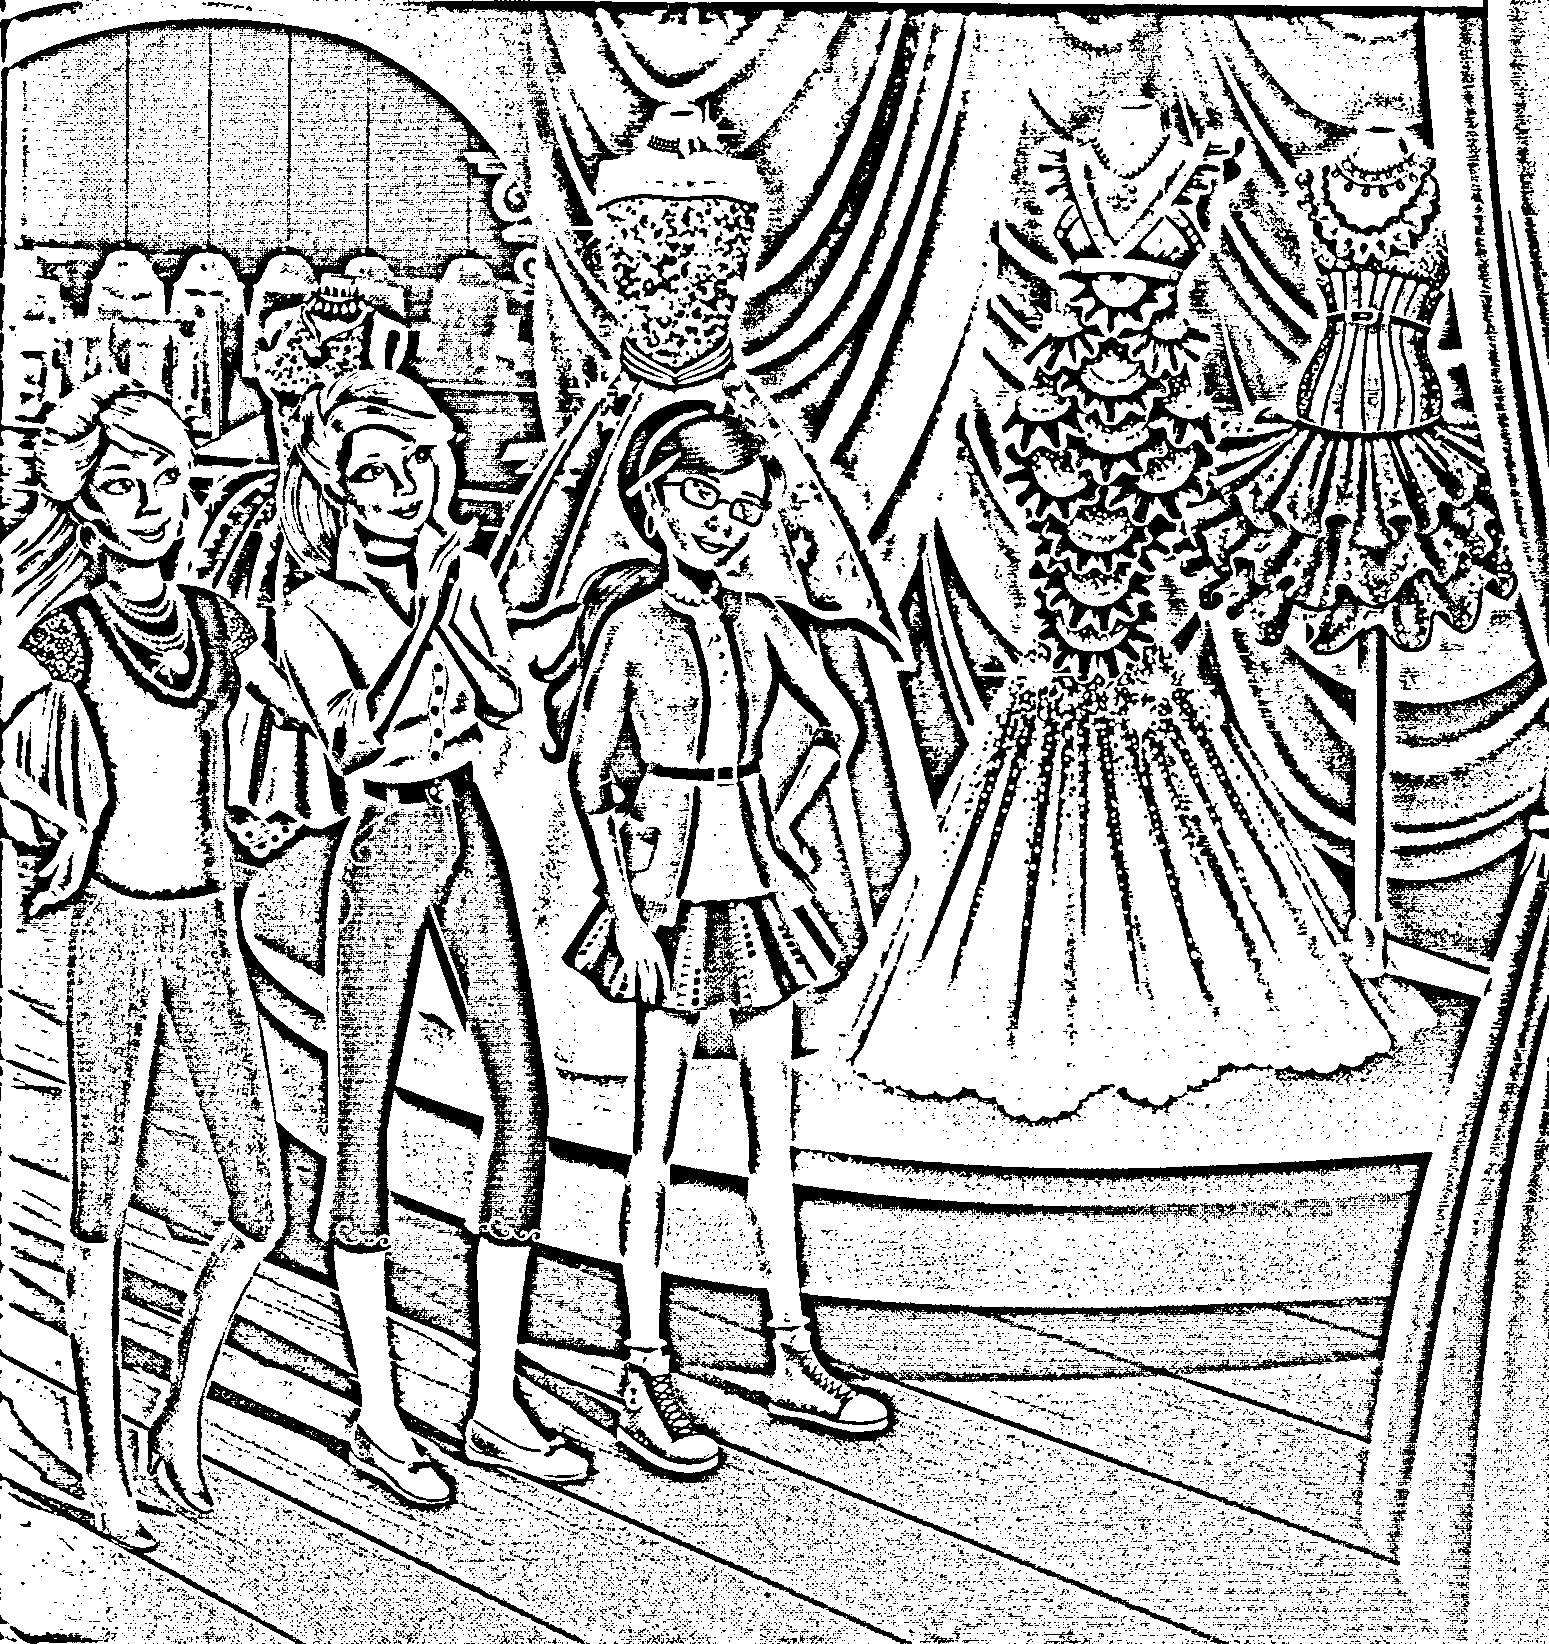 Barbie in a Fashion Fairytale Coloring Picture 9